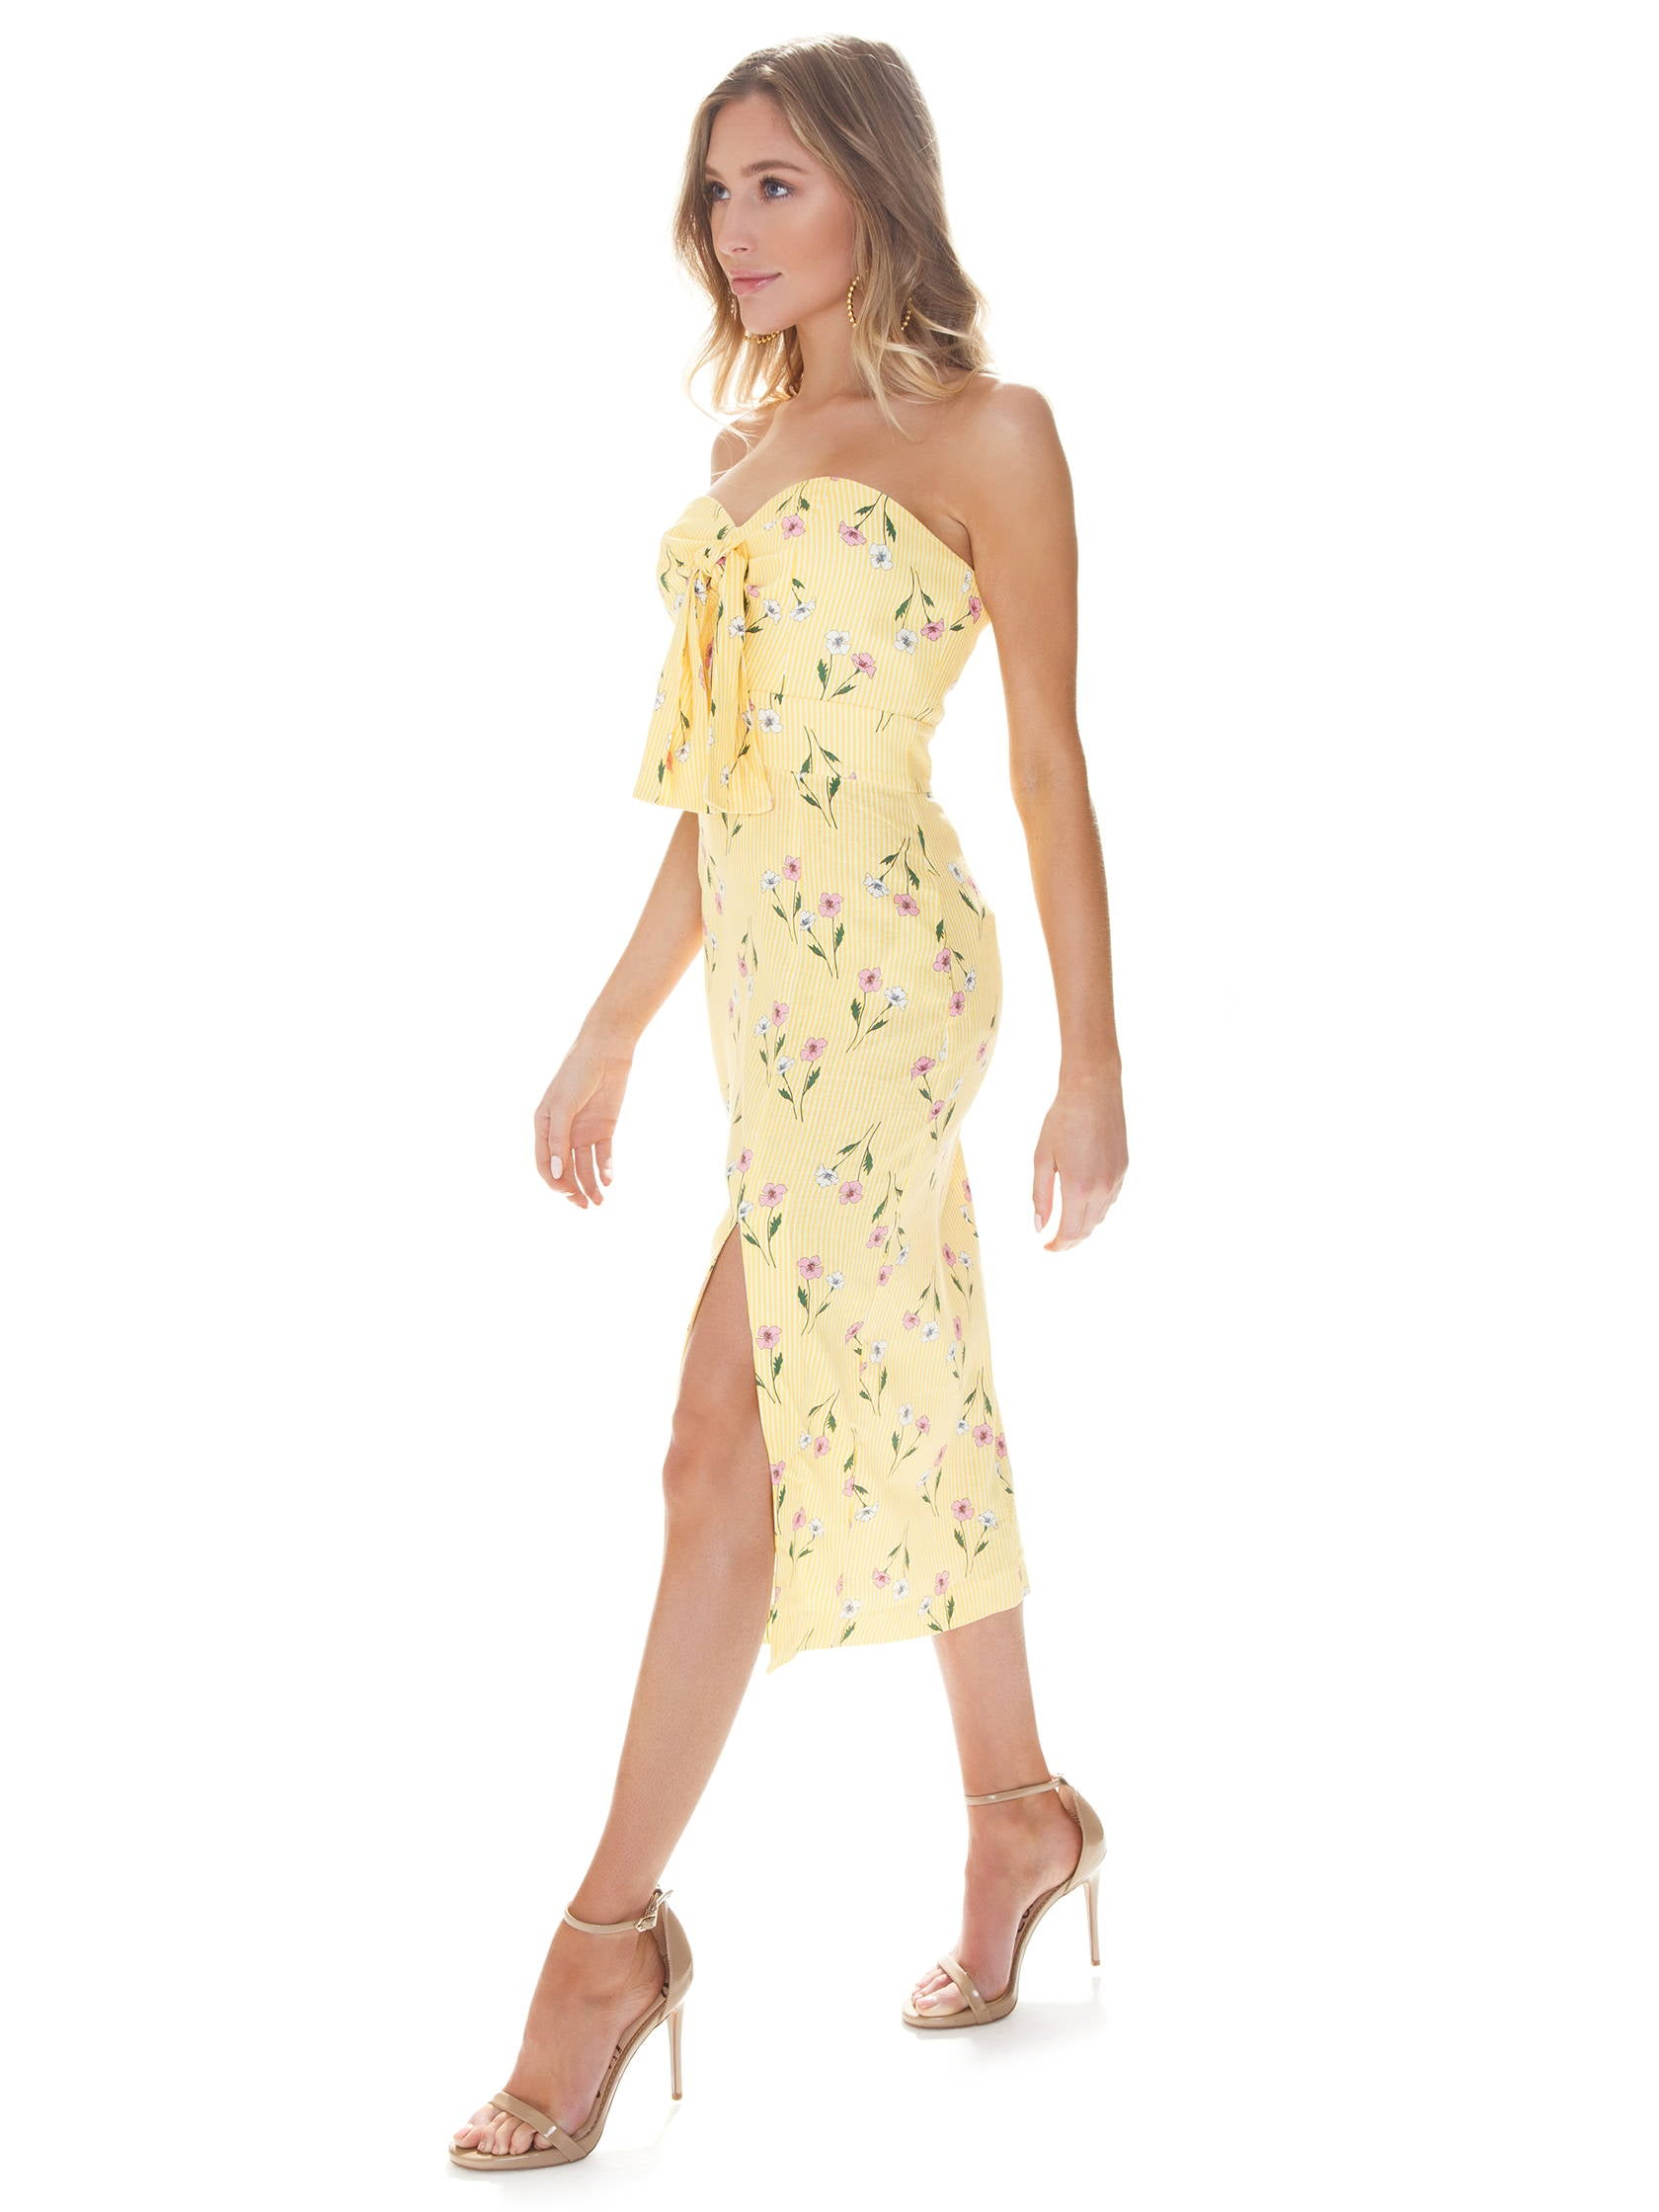 Woman wearing a dress rental from Finders Keepers called Limoncello Dress